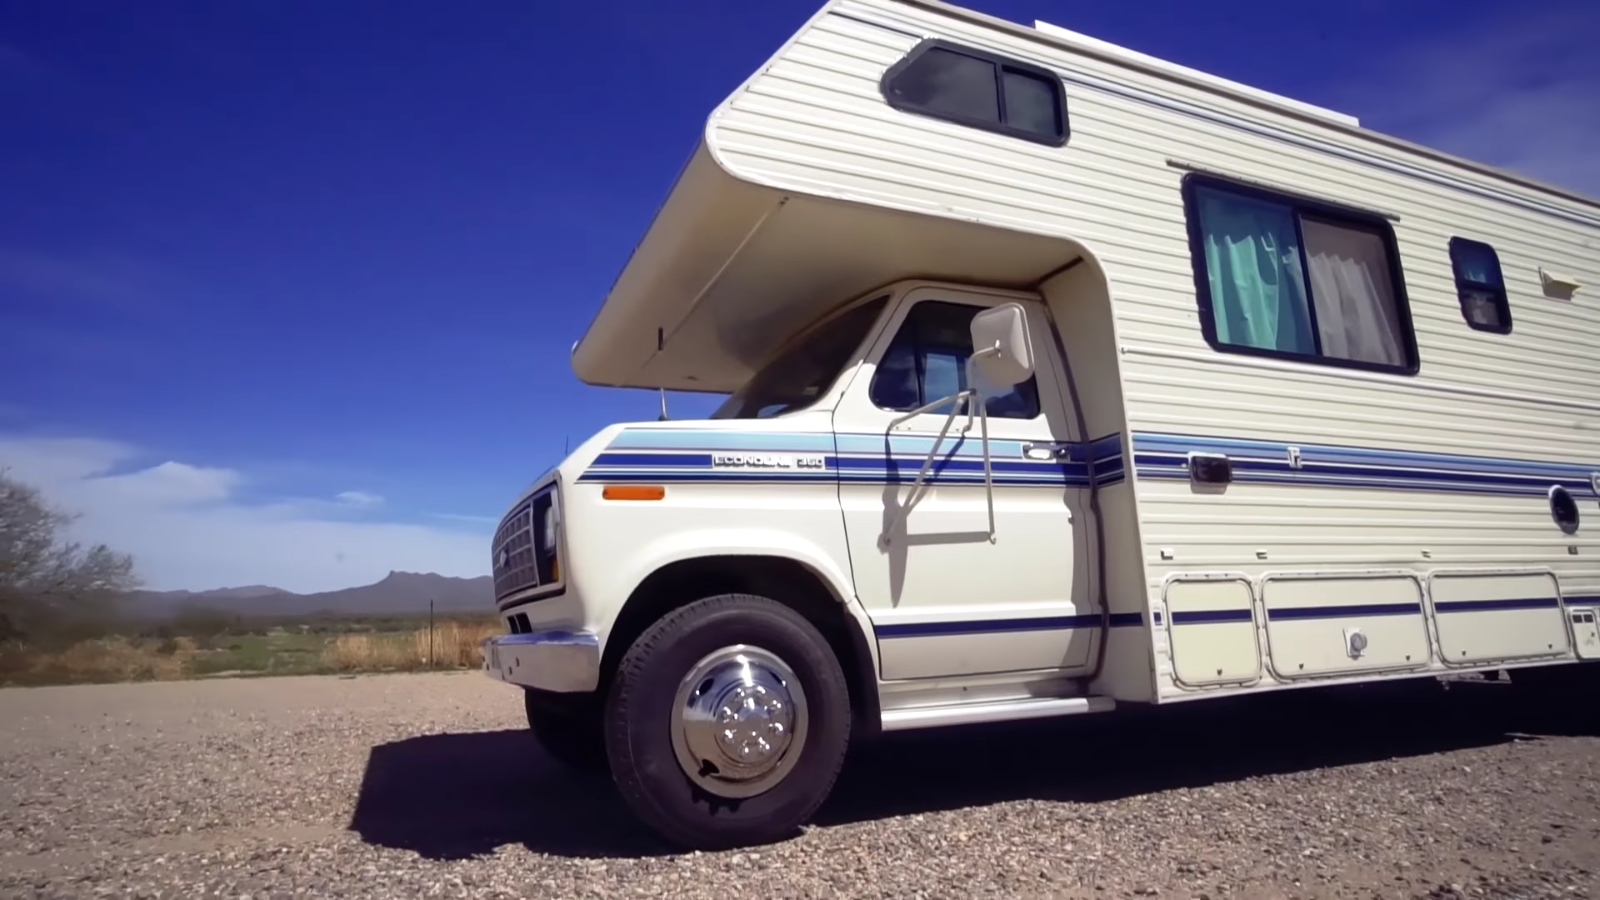 Site Search Discovery Powered By Ai Class C Rv Motorhome Remodel Class C Campers